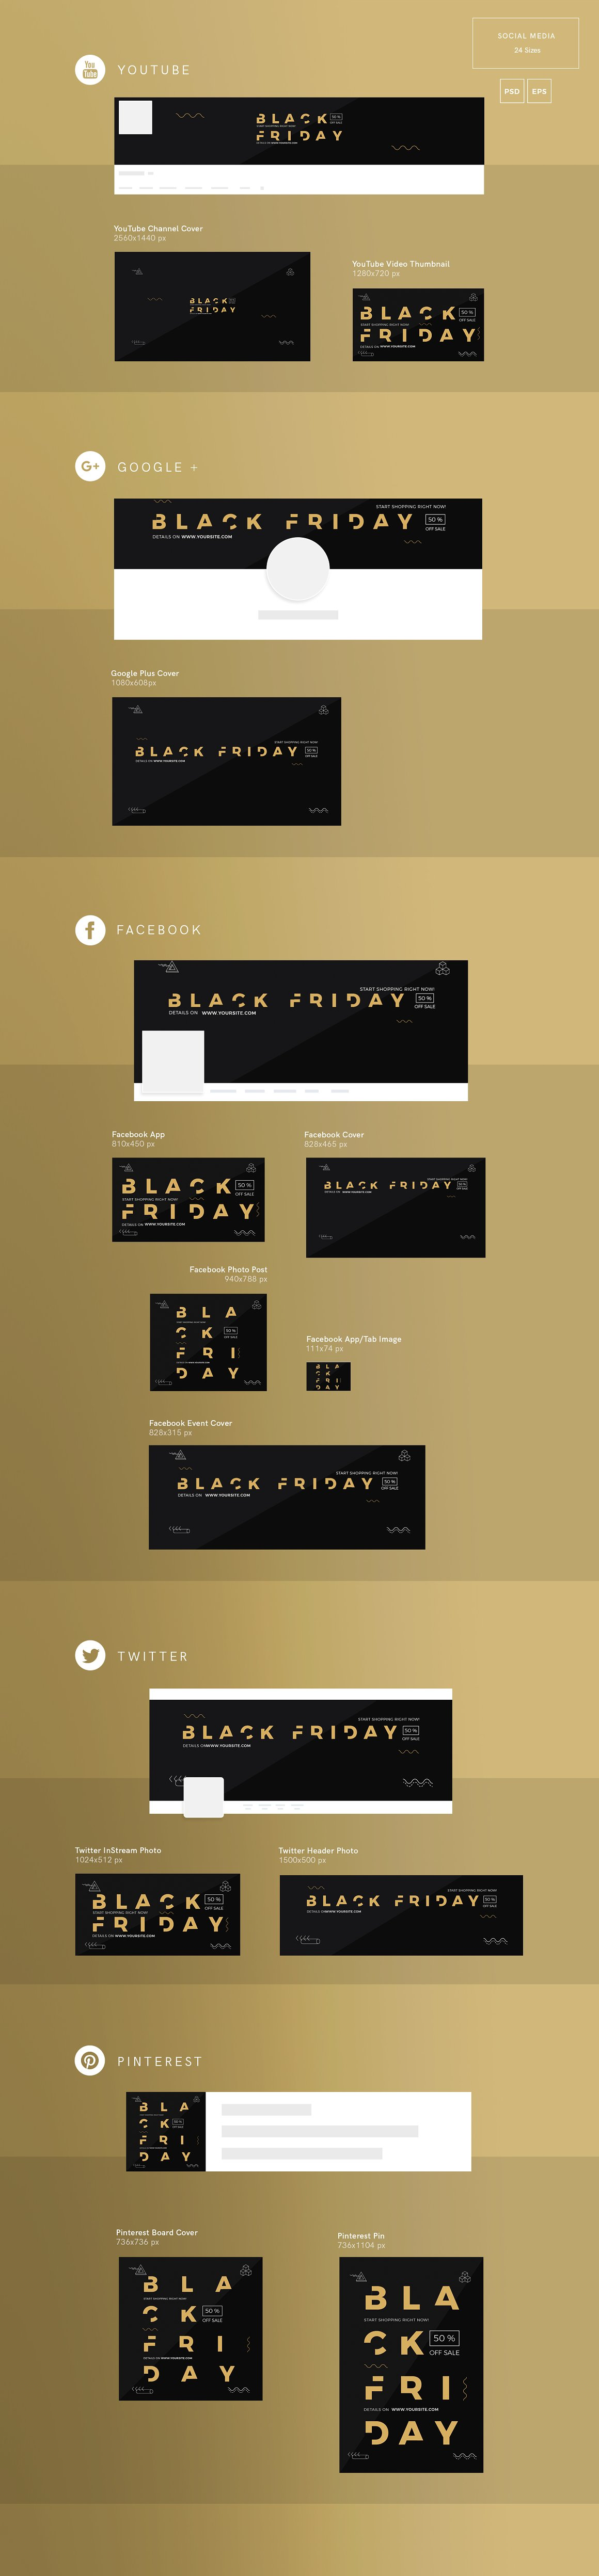 Social Media Pack | Black Friday